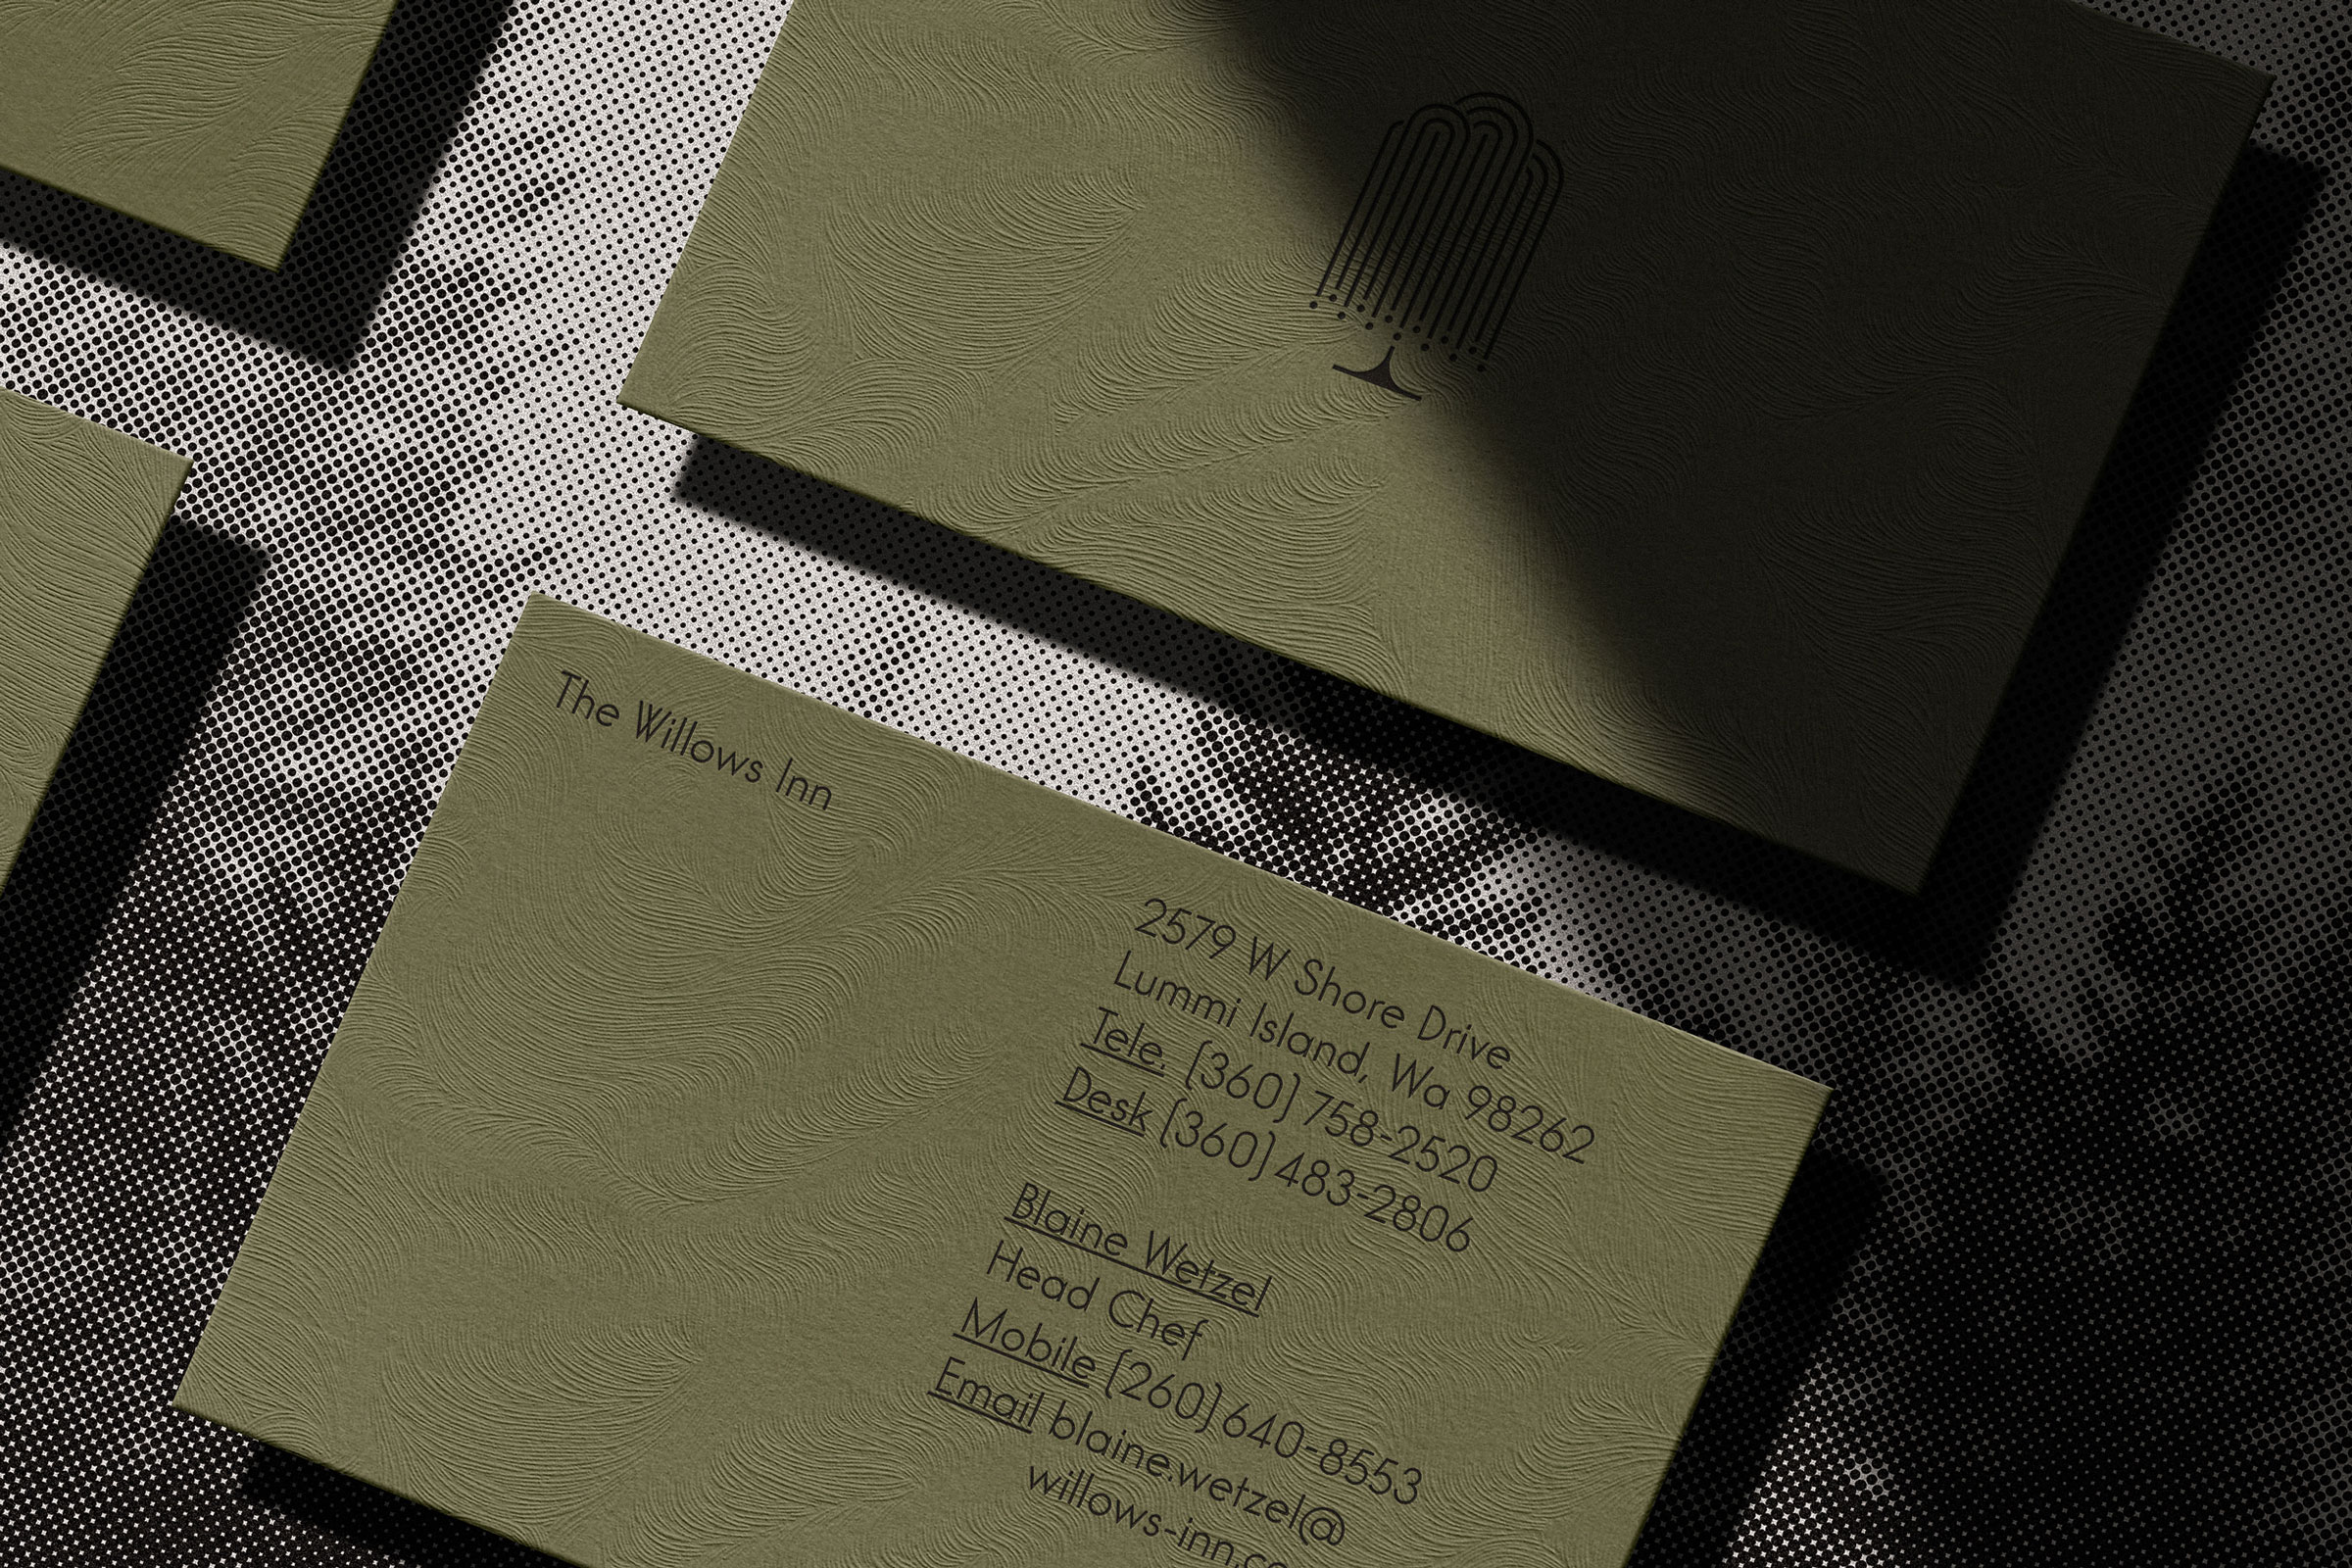 the-willows-inn-business-cards-detail